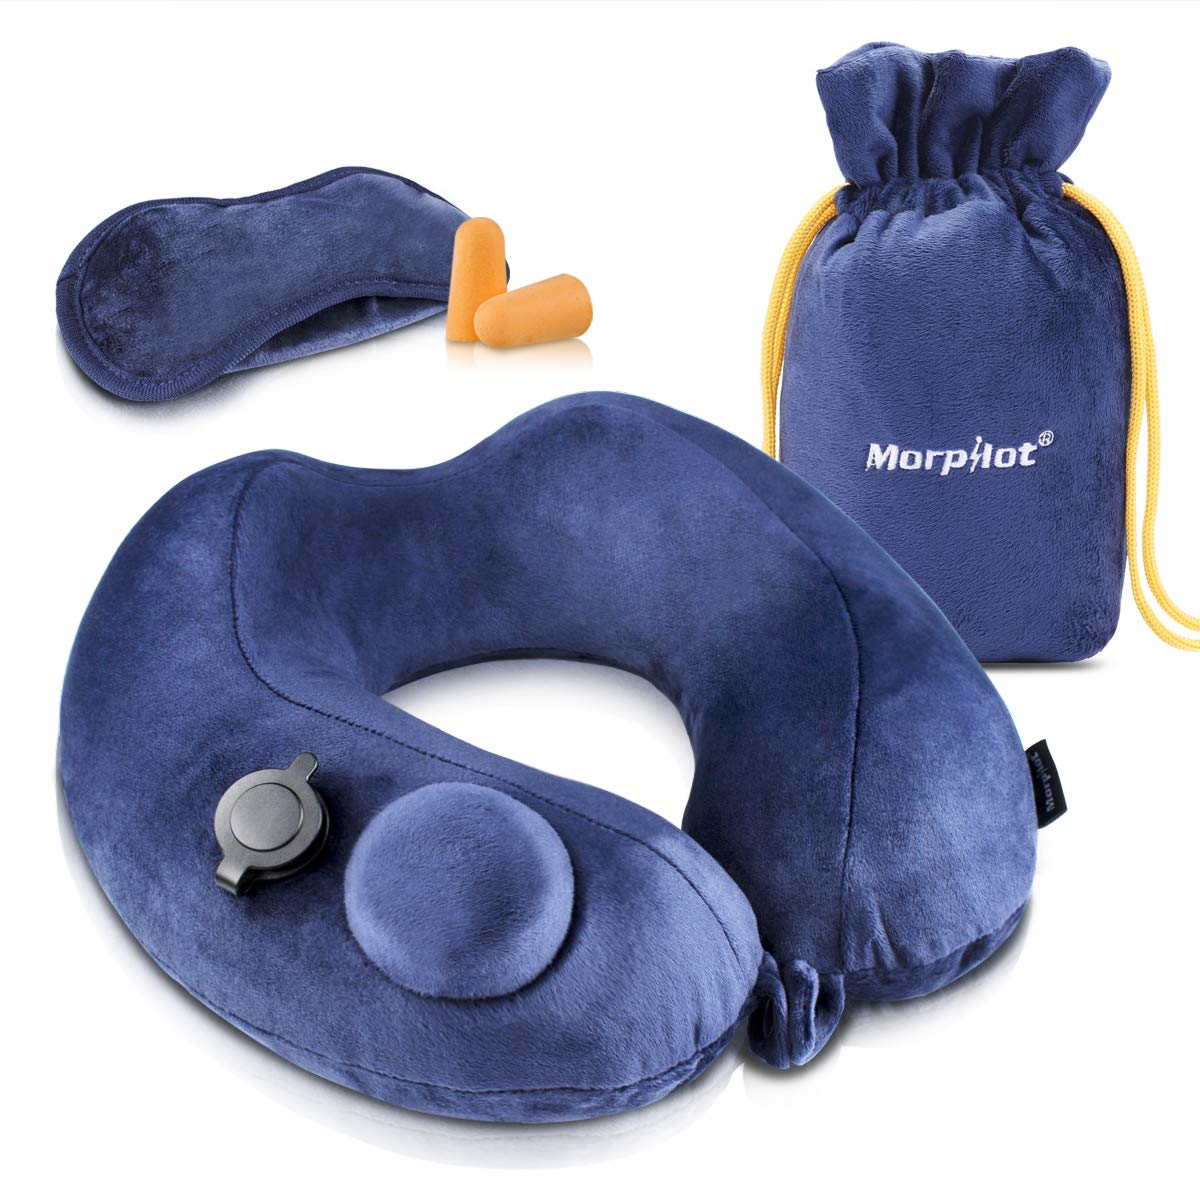 morpilot Inflatable Travel Pillow Velvet Neck Pillows Soft for Aircraft Train and Automobile with Ear Plugs and Compact and Lightweight Mask